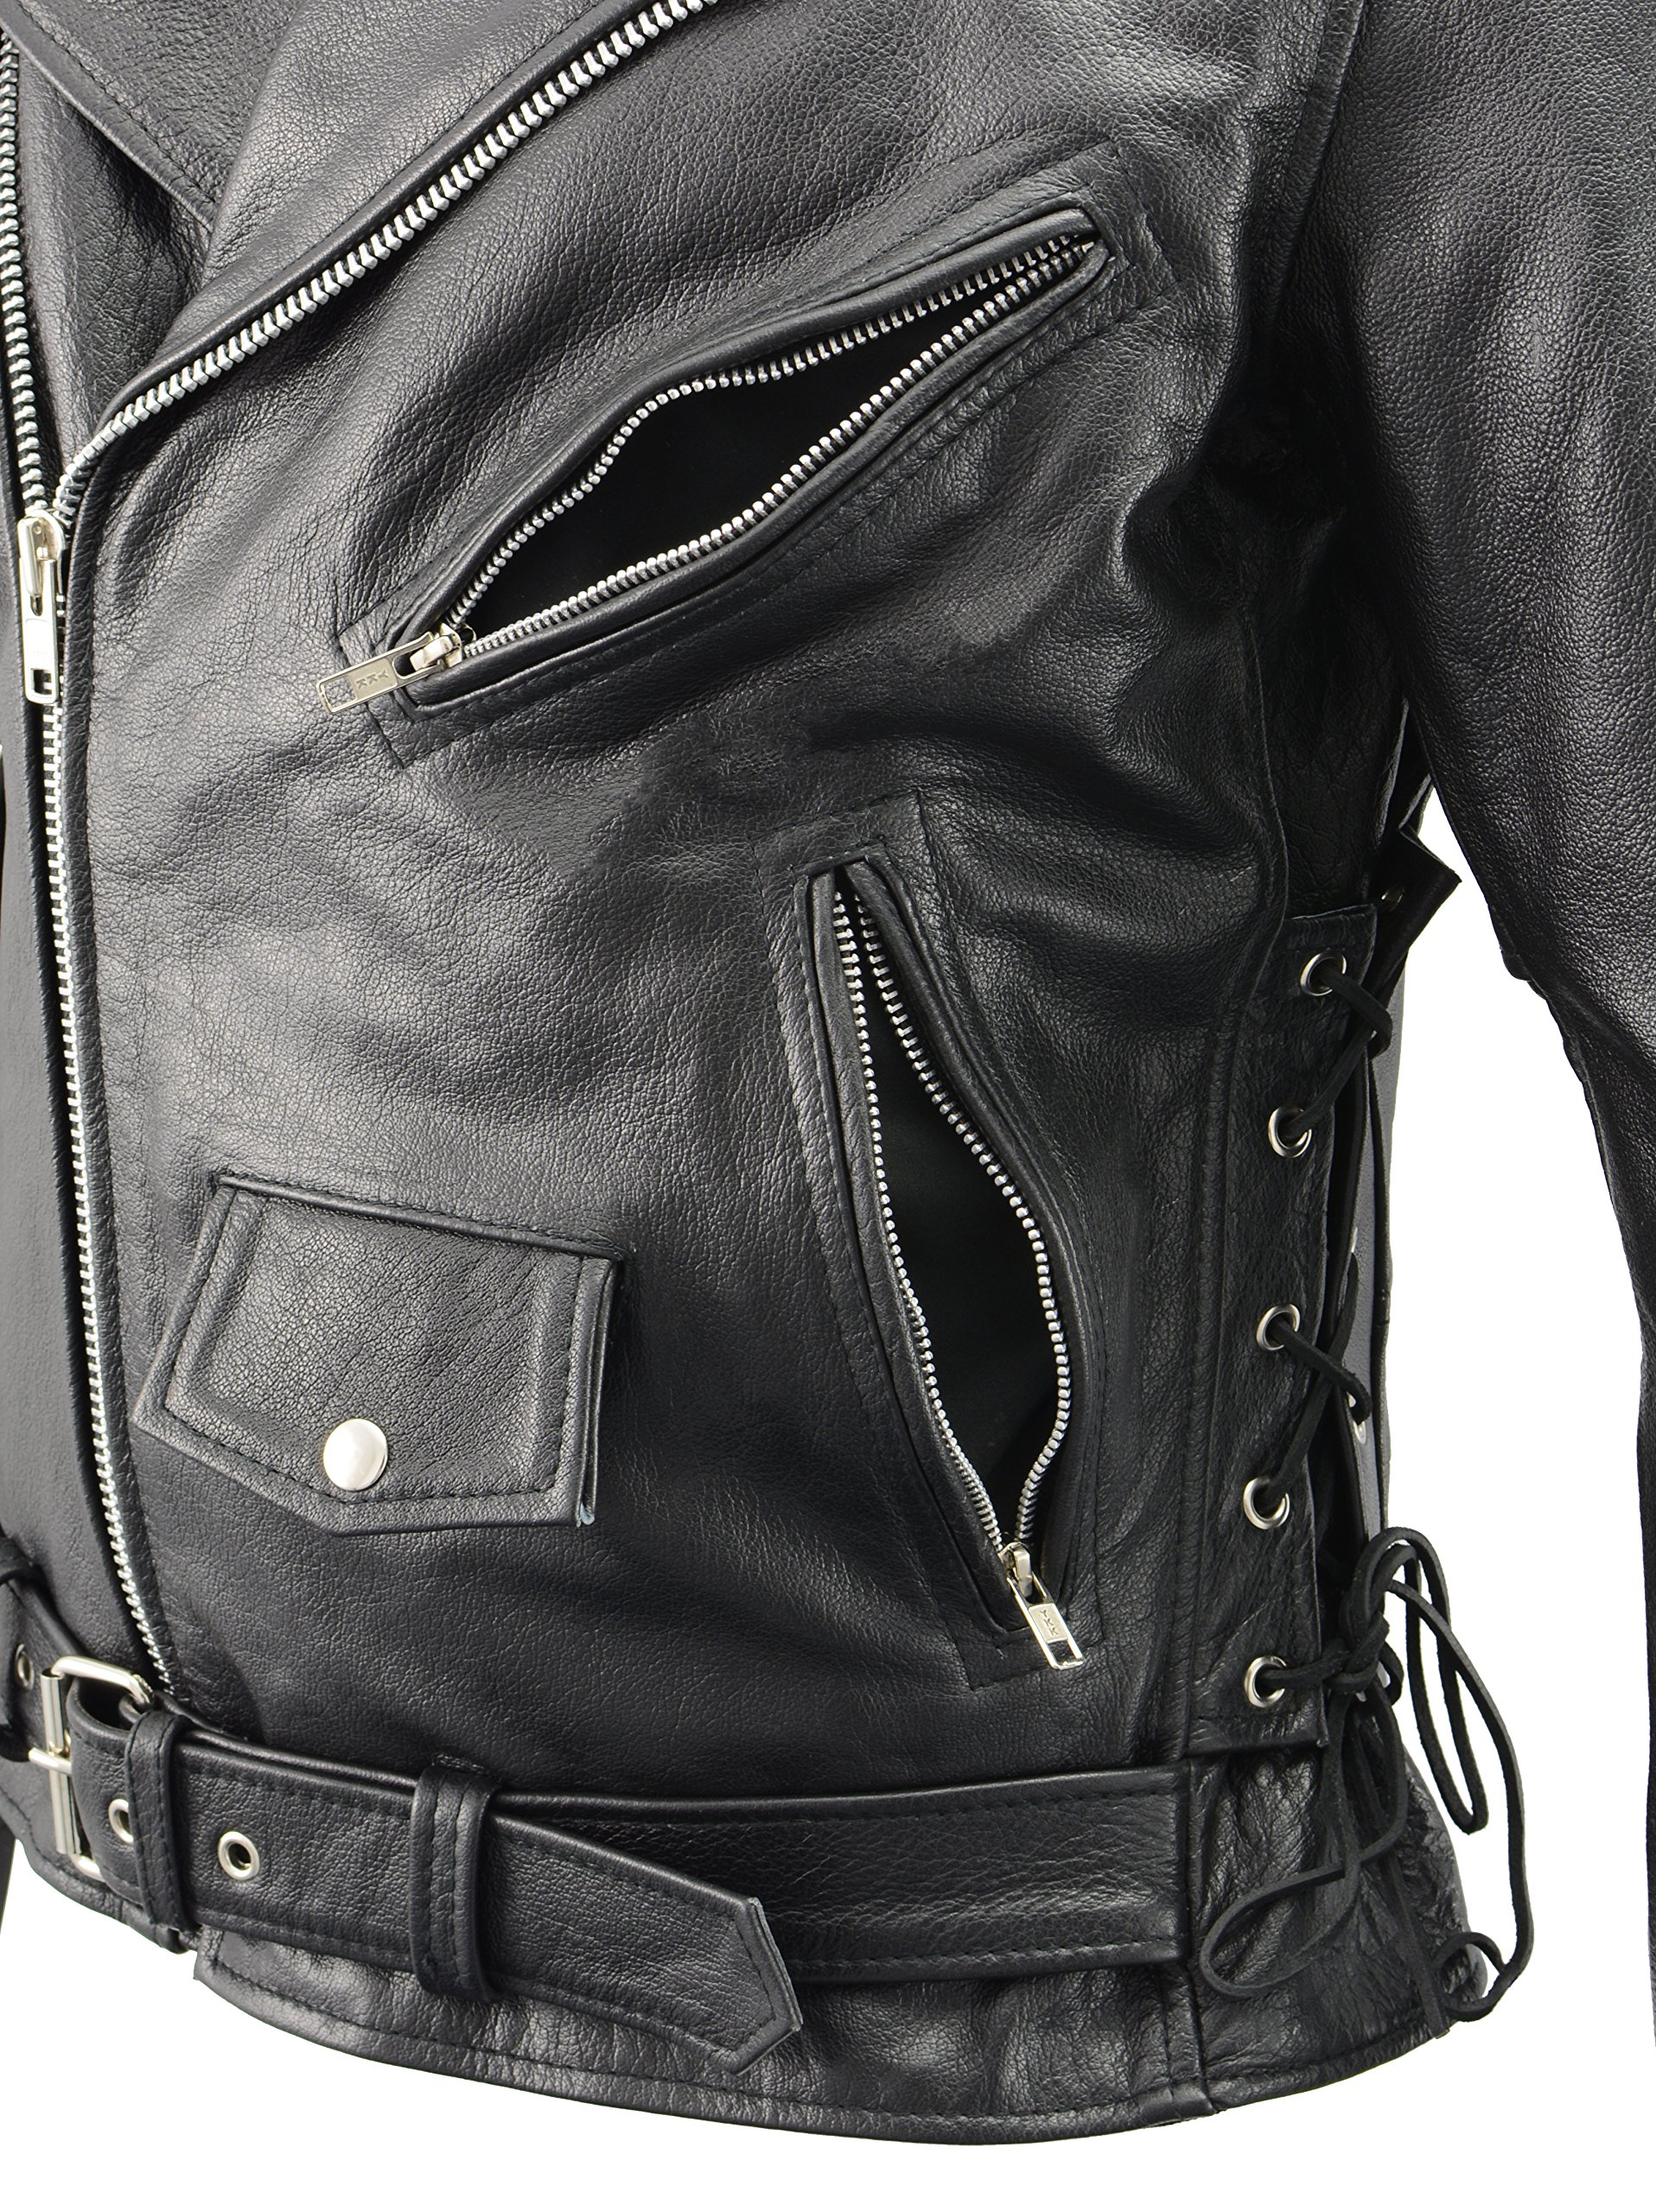 Men's Leather Motorcycle Jacket with CE Certified Armor | Premium Natural Buffalo Leather | 2 Concealed Carry Gun Pockets | Adjustable Side Lace Biker Jacket with Patch Access Lining (Black, 8XL) by The Bikers Zone (Image #6)